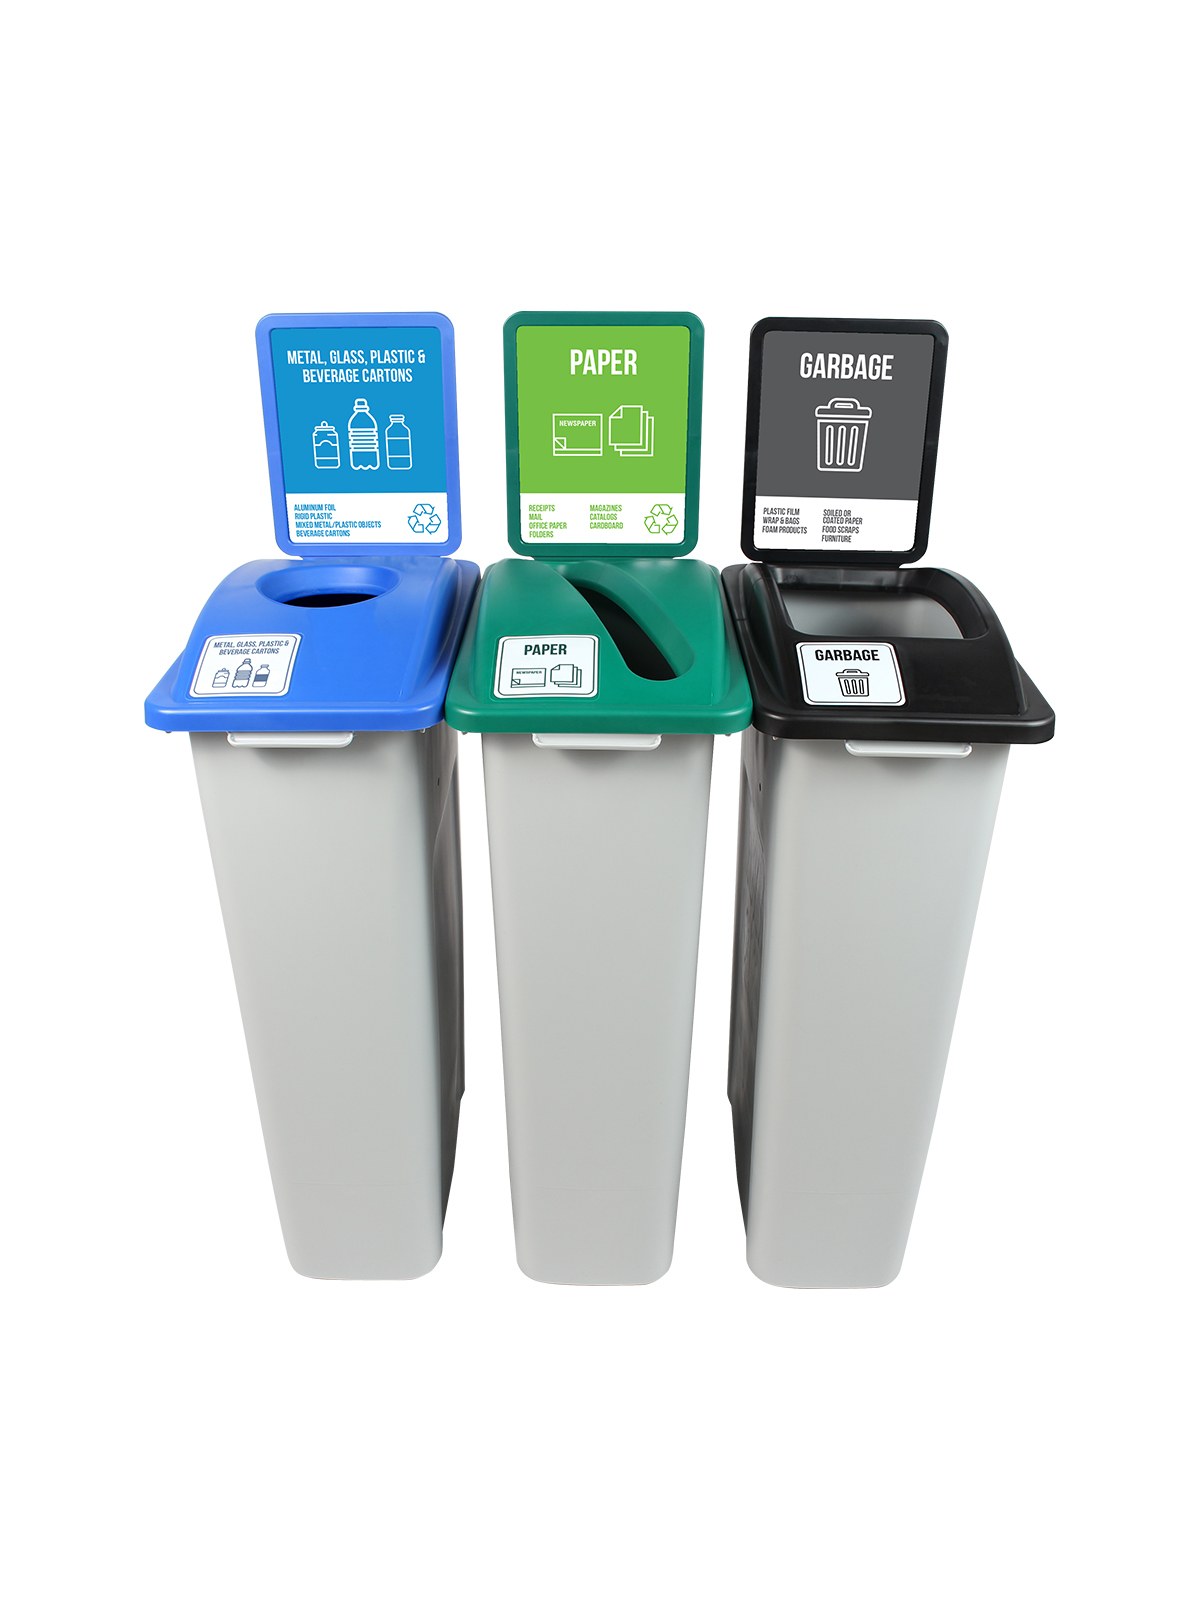 WASTE WATCHER - Triple - New York City Compliant - Metal, Glass, Plastic & Beverage Containers-Paper-Garbage - Circle-Slot-Full - Grey-Blue-Green-Black title=